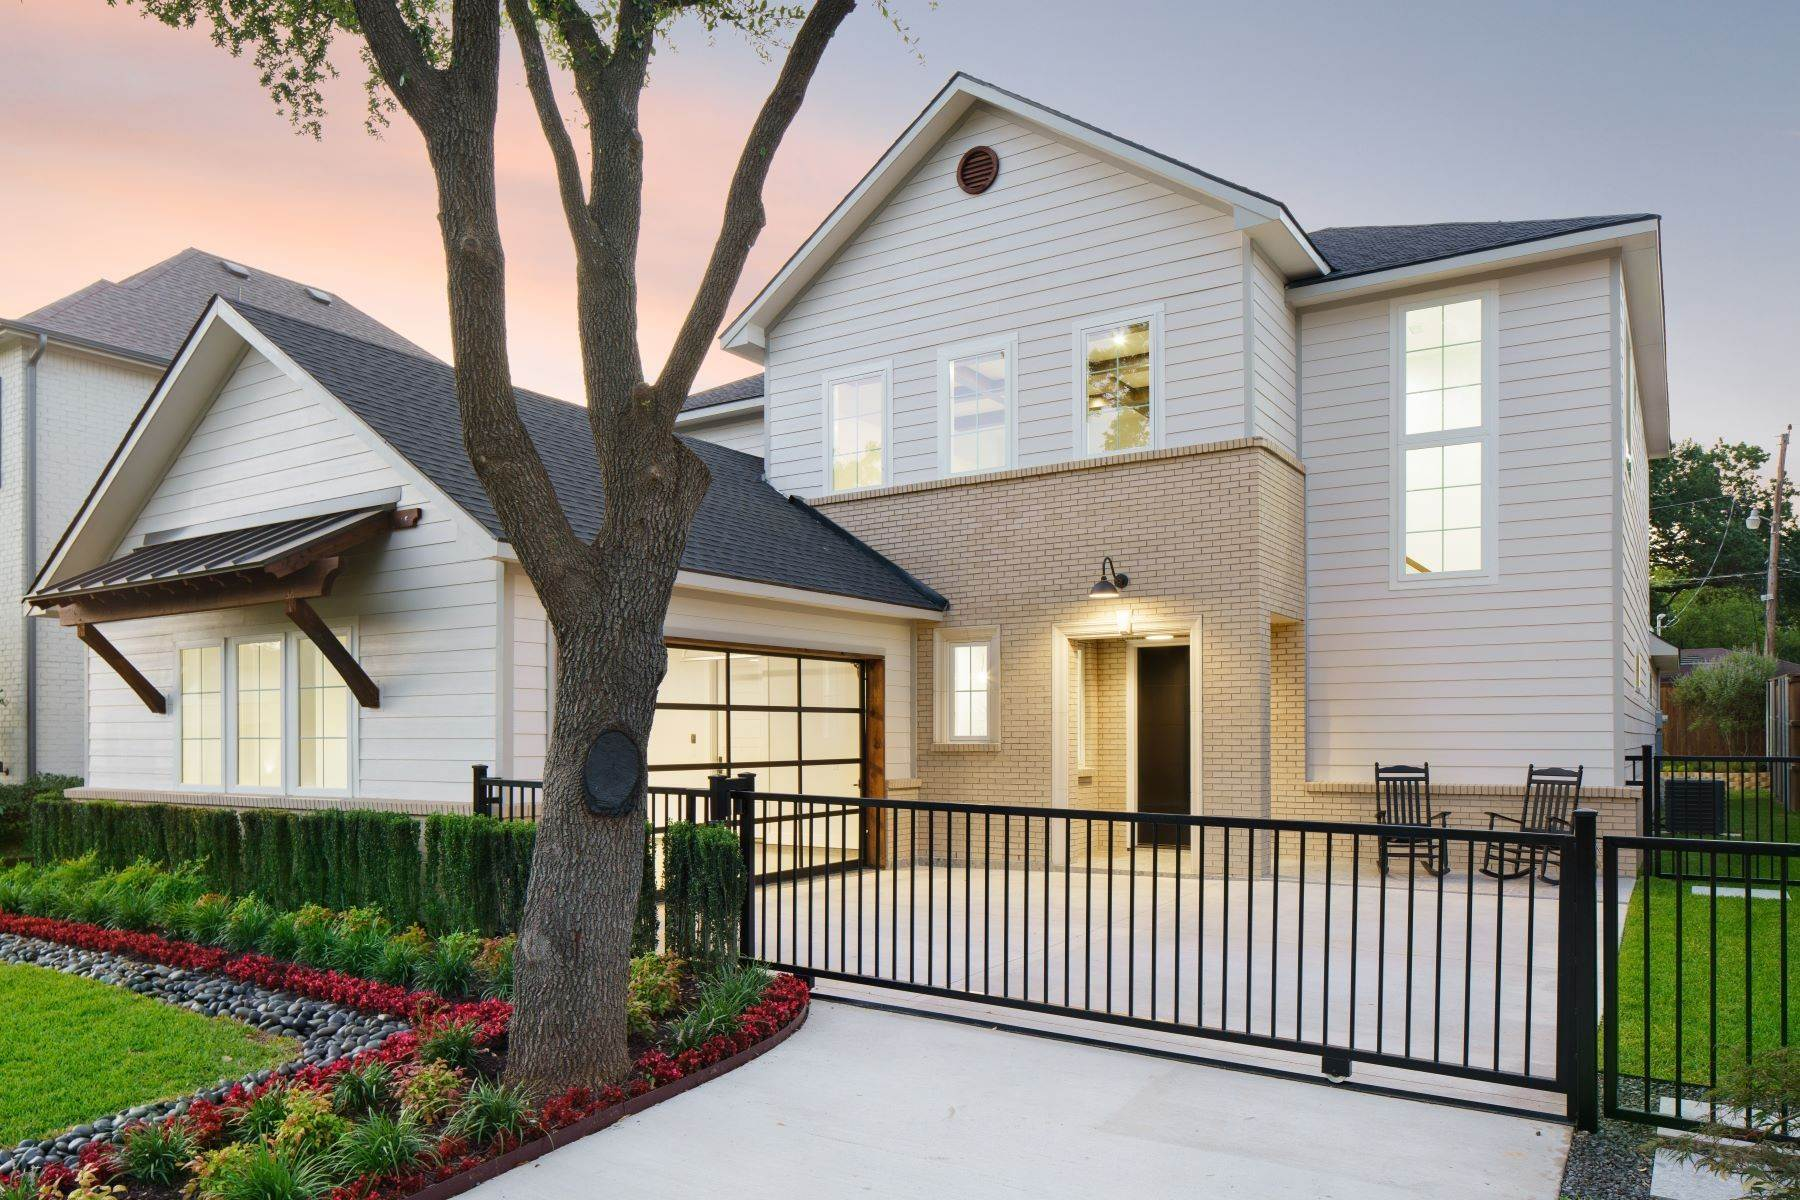 4. Single Family Homes for Sale at Midway Hollow Modern Transitional 3935 Lively Lane Dallas, Texas 75220 United States